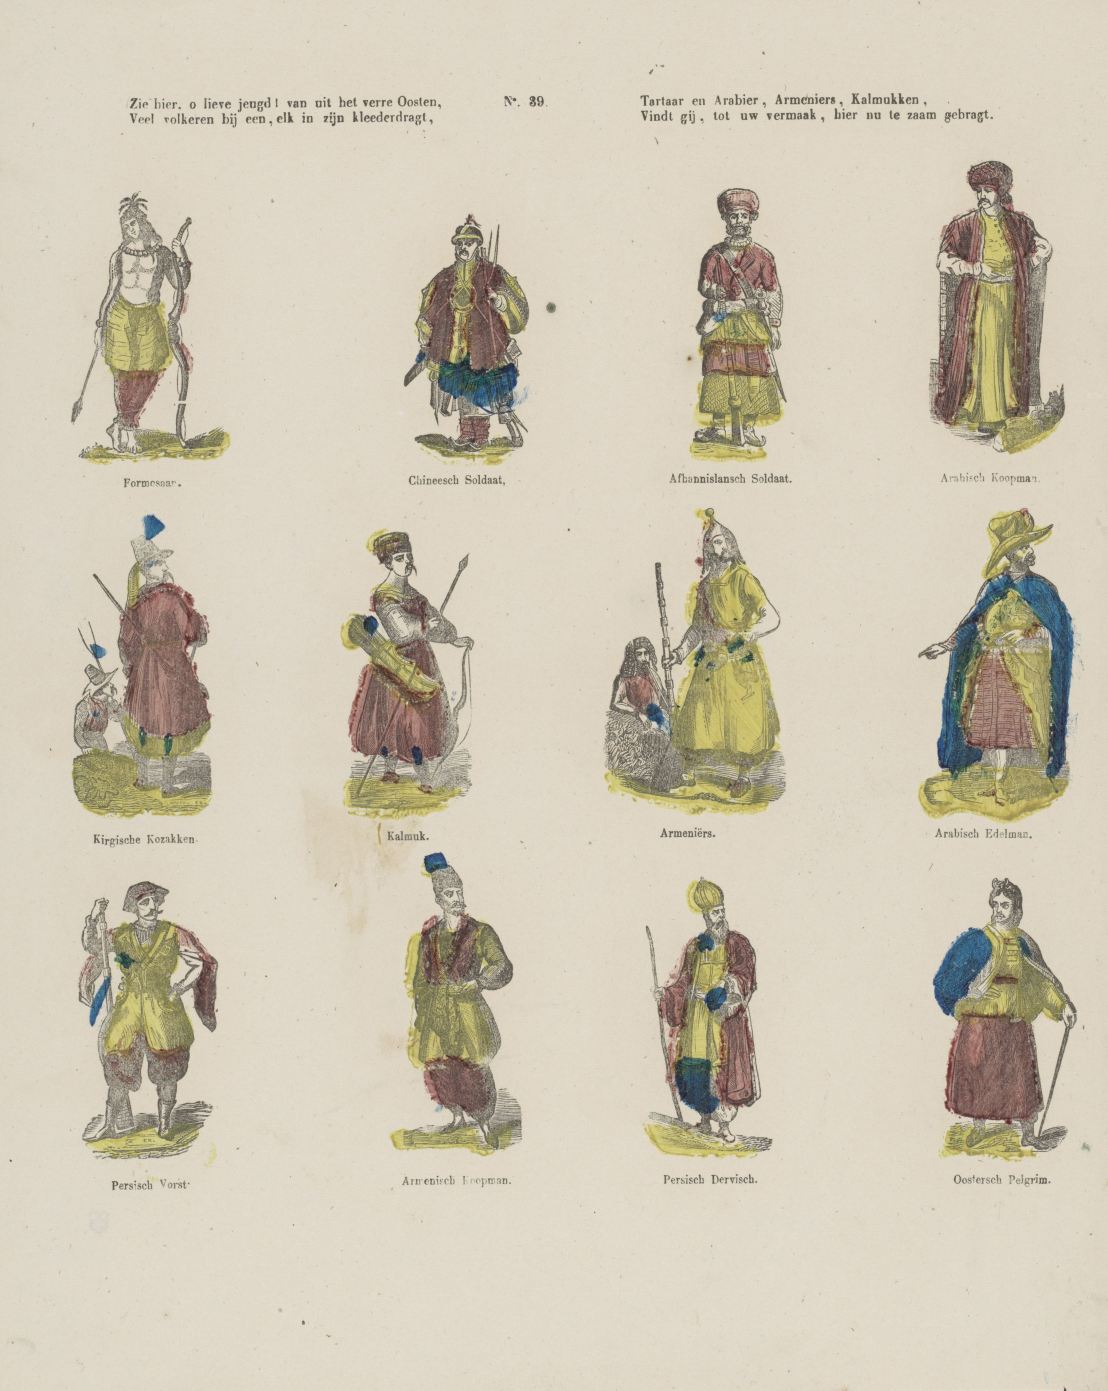 See here, oh dear children! People from the far east in their garments. For your pleasure, Lutkie & Cranenburg, 1848.